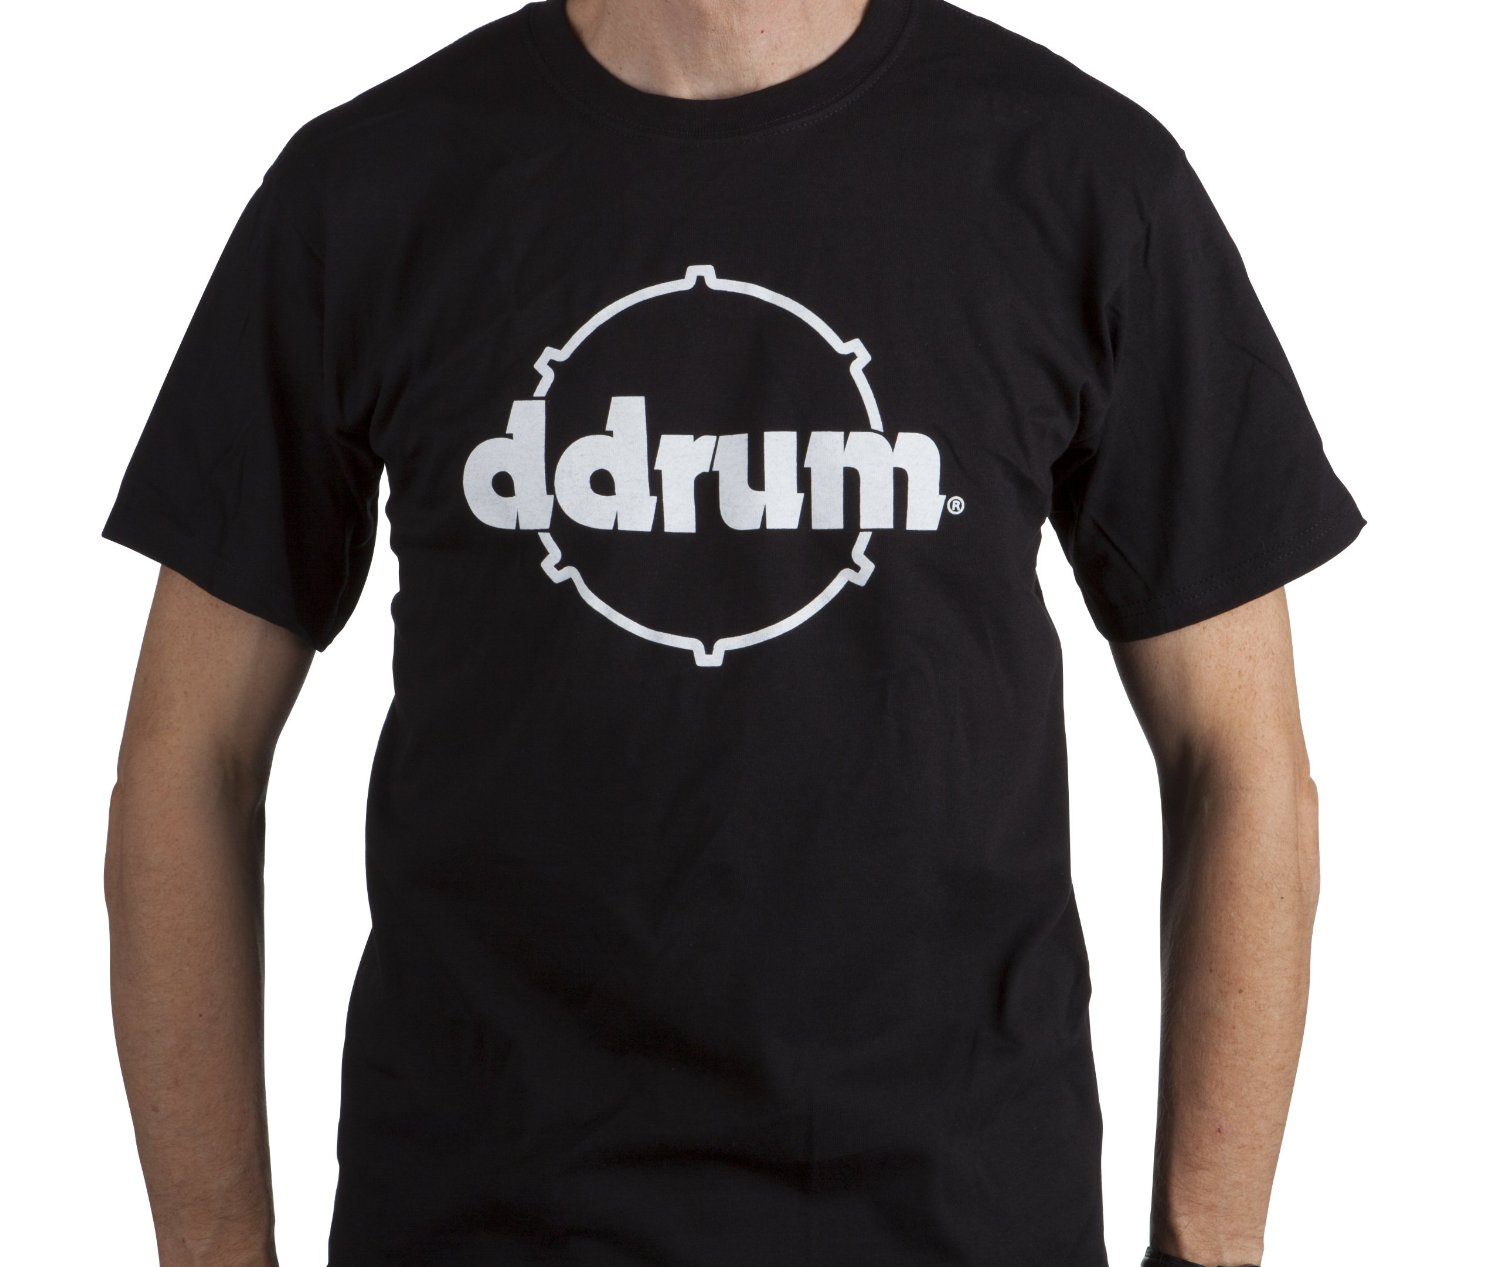 dDrum Black Colored Hoop Tee T-Shirt with White Logo - Extra Large Size (TSHIRT DDRUM HOOP XL)